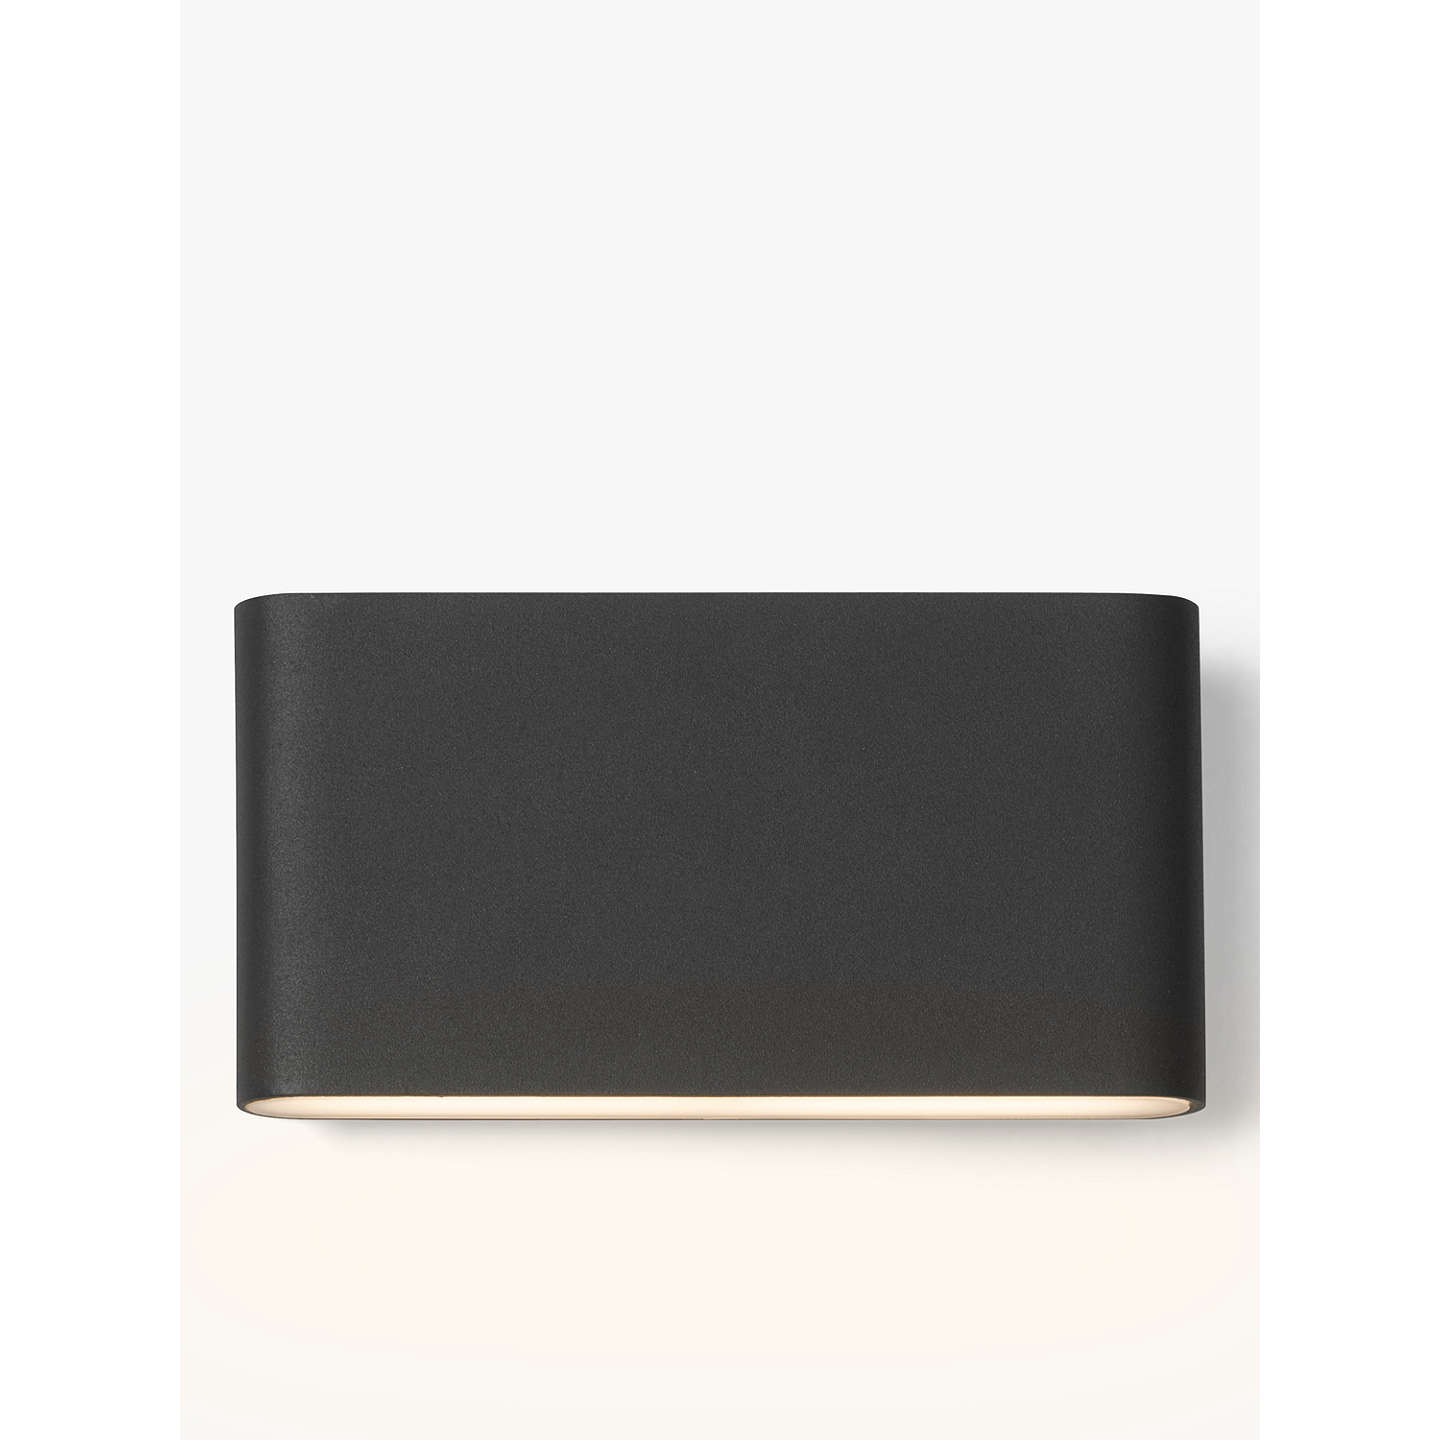 John lewis olbia led outdoor wall light charcoal at john lewis buyjohn lewis olbia led outdoor wall light charcoal online at johnlewis aloadofball Image collections